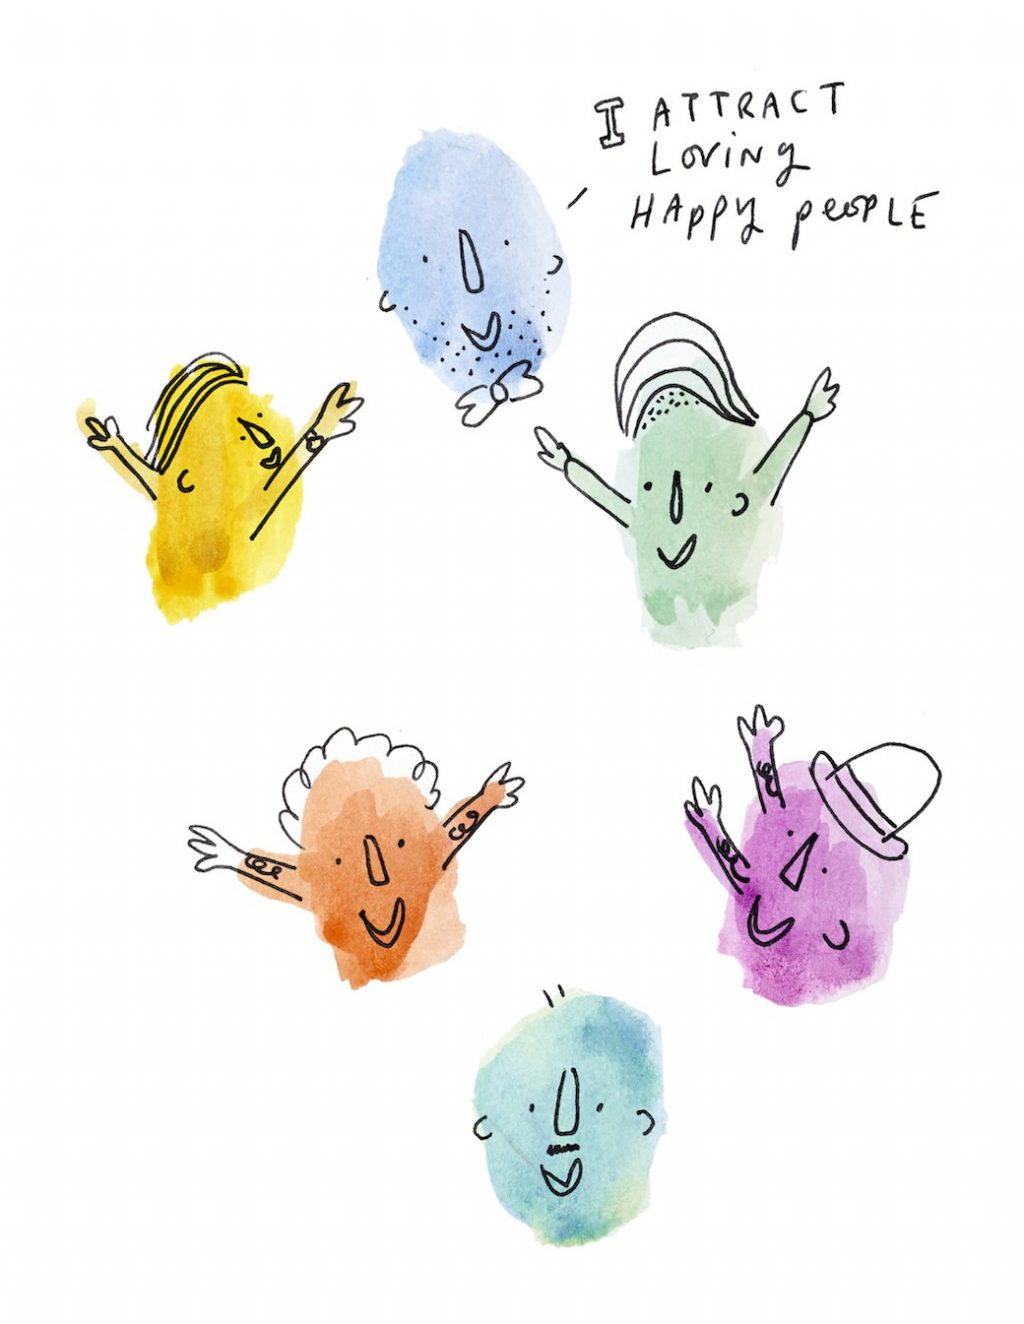 I Attract Happy, Loving People by Theo Carter-Weber